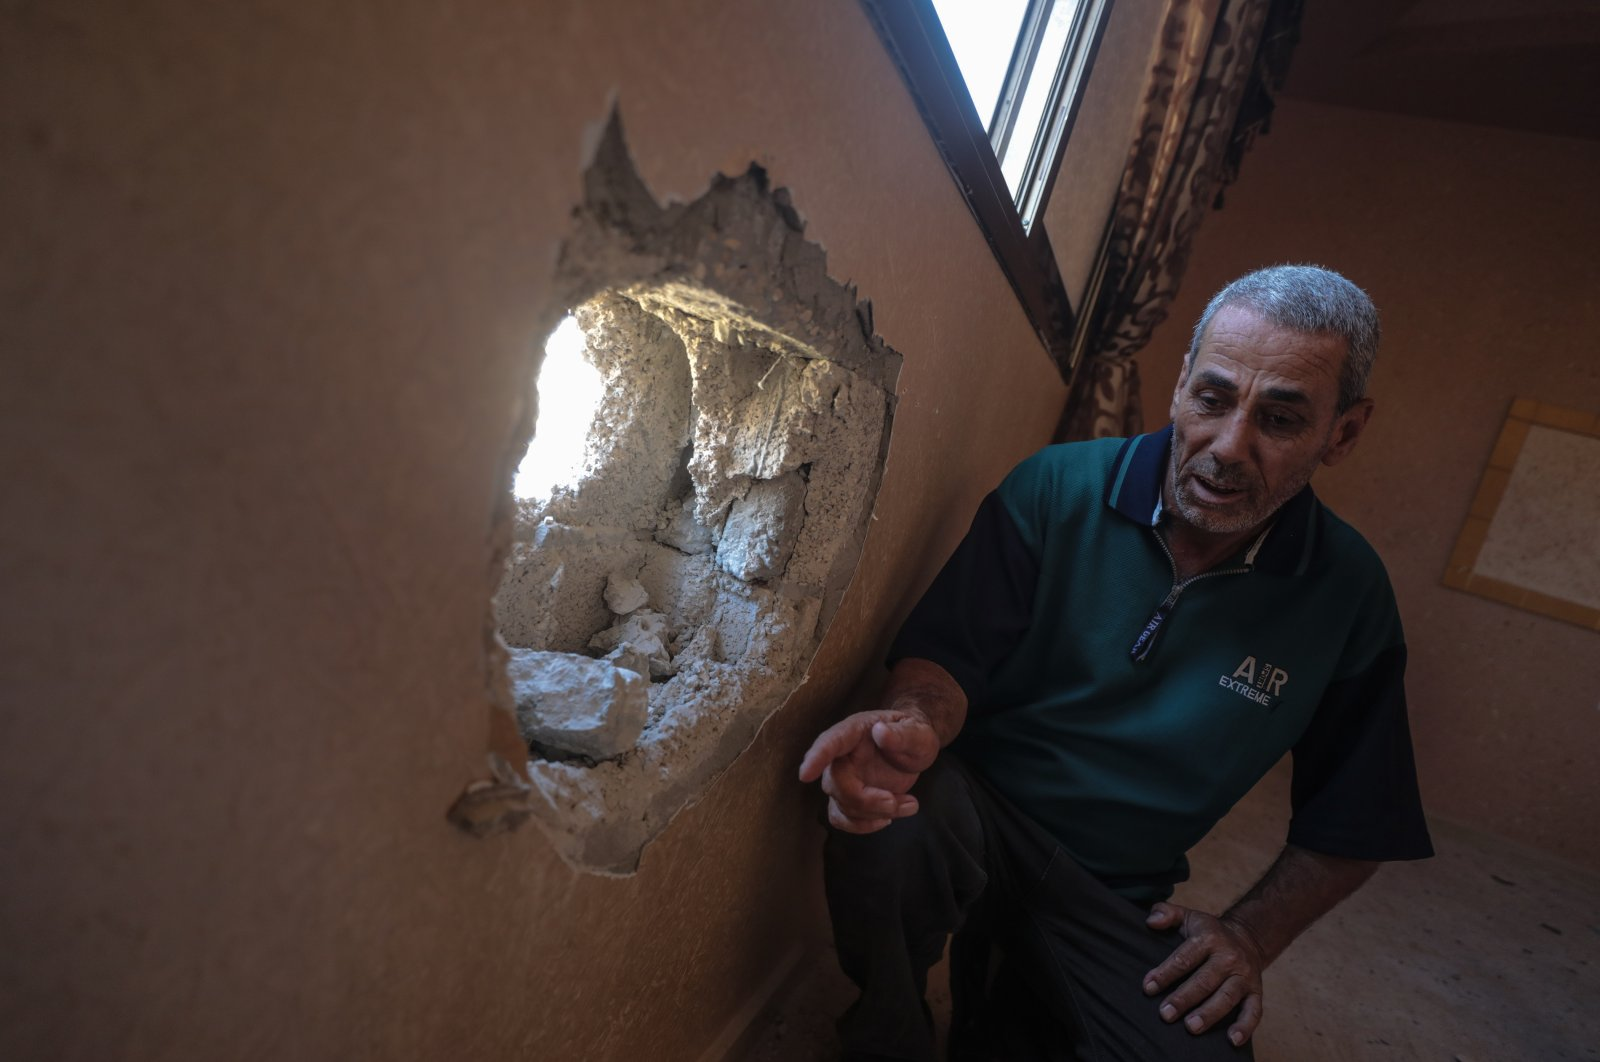 A Palestinian home is damaged during Israeli airstrikes, Khan Younis, Gaza Strip, Aug. 24, 2020. (AA Photo)